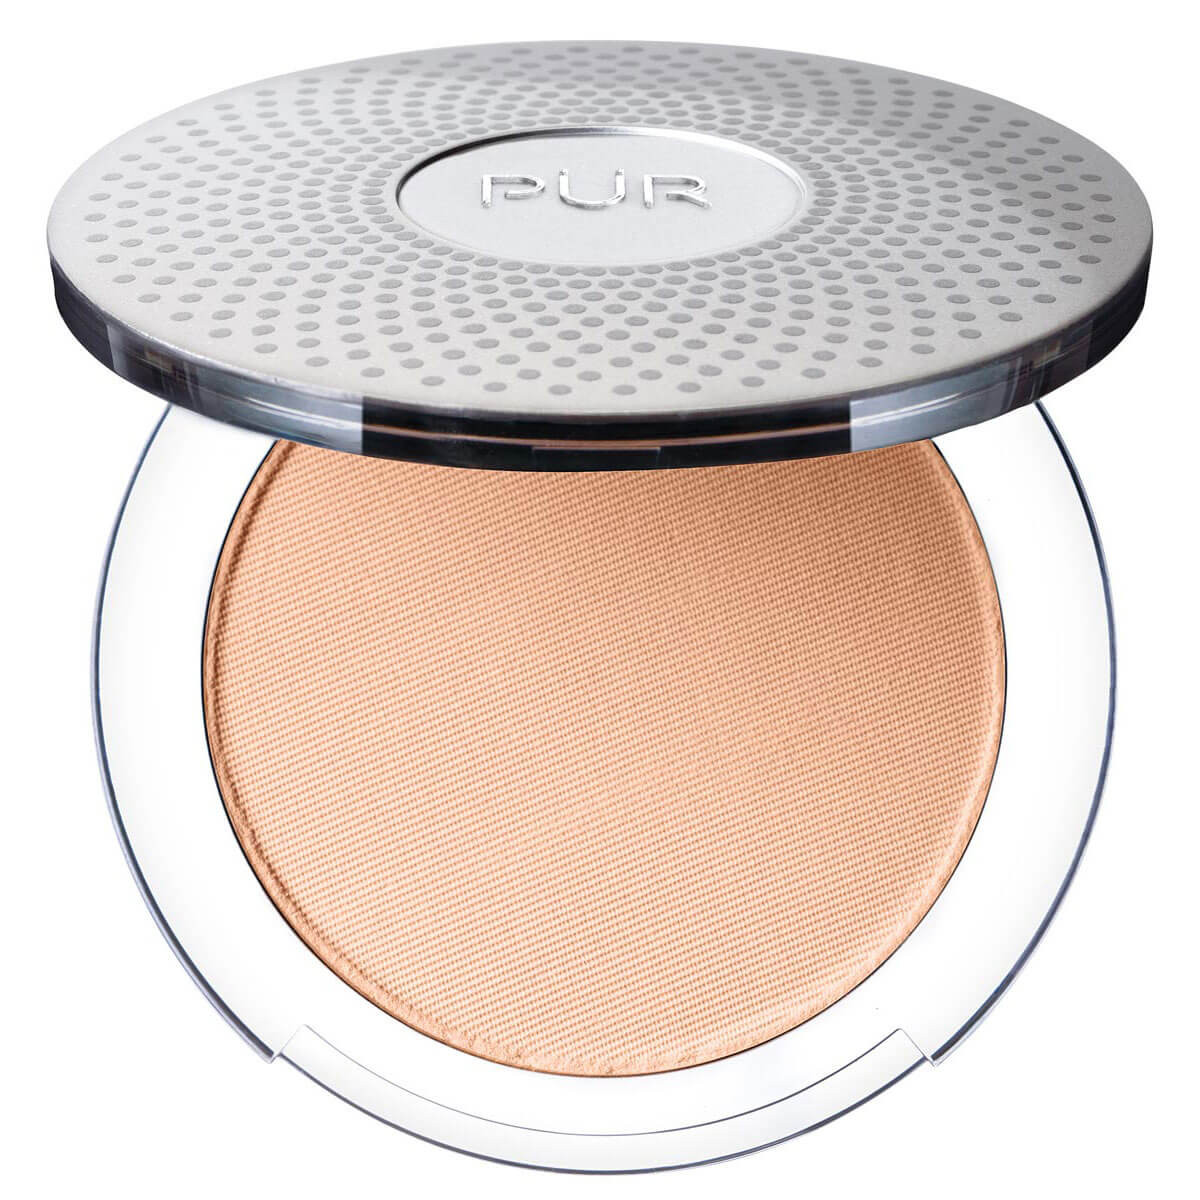 4-in-1 Pressed Mineral Makeup Foundation with Skincare Ingredients in Blush Medium/MP3